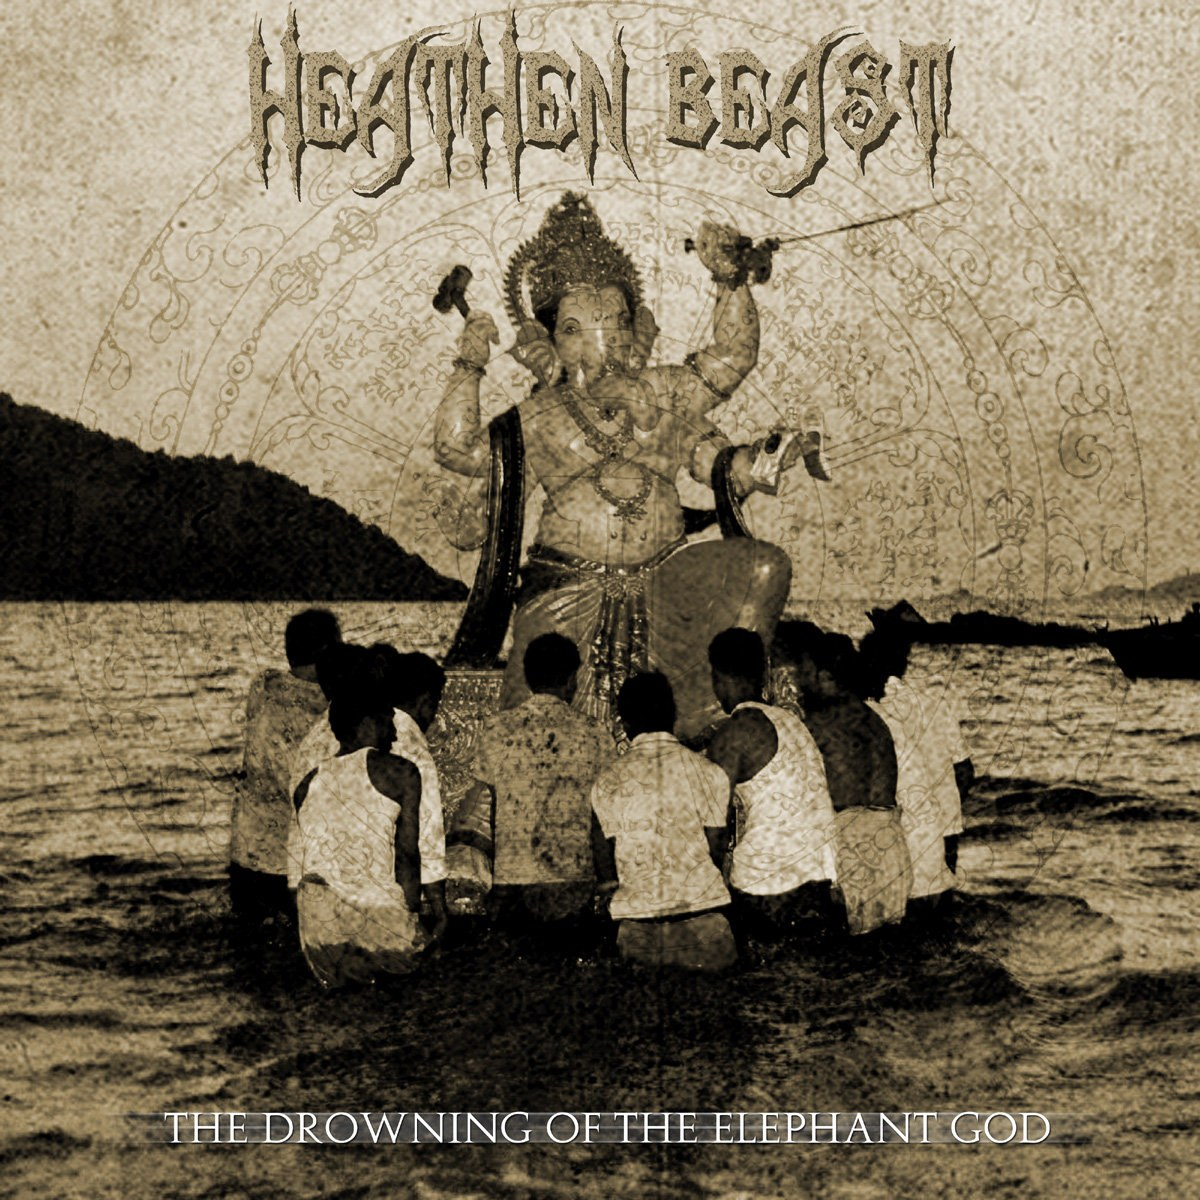 Review for Heathen Beast - The Drowning of the Elephant God